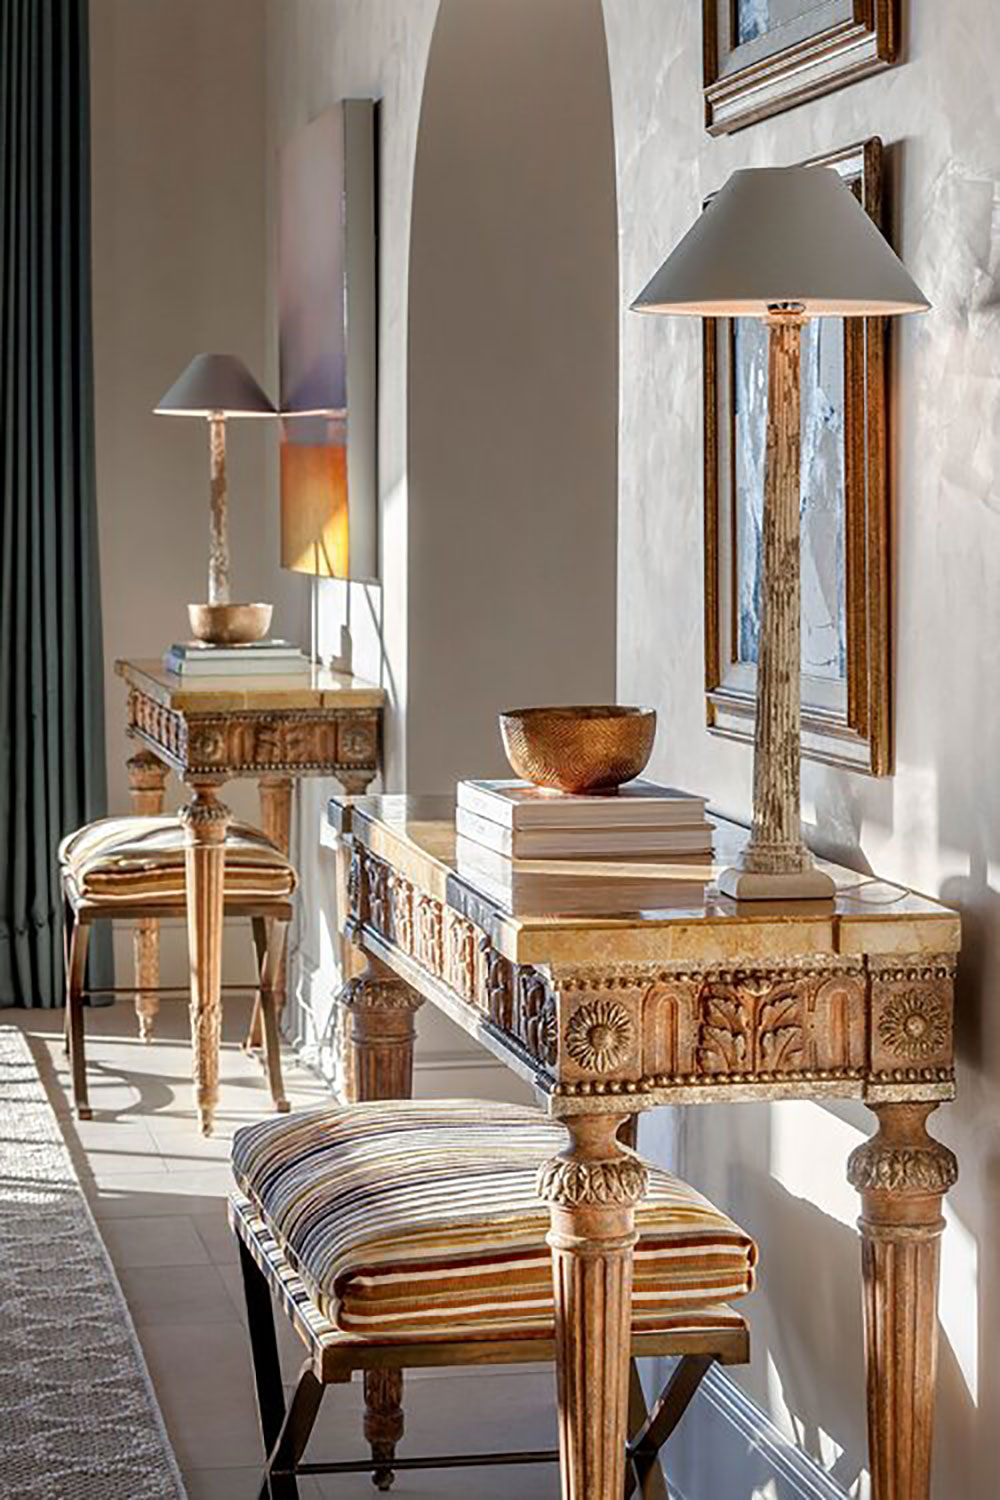 Meredith McBrearty on interior design